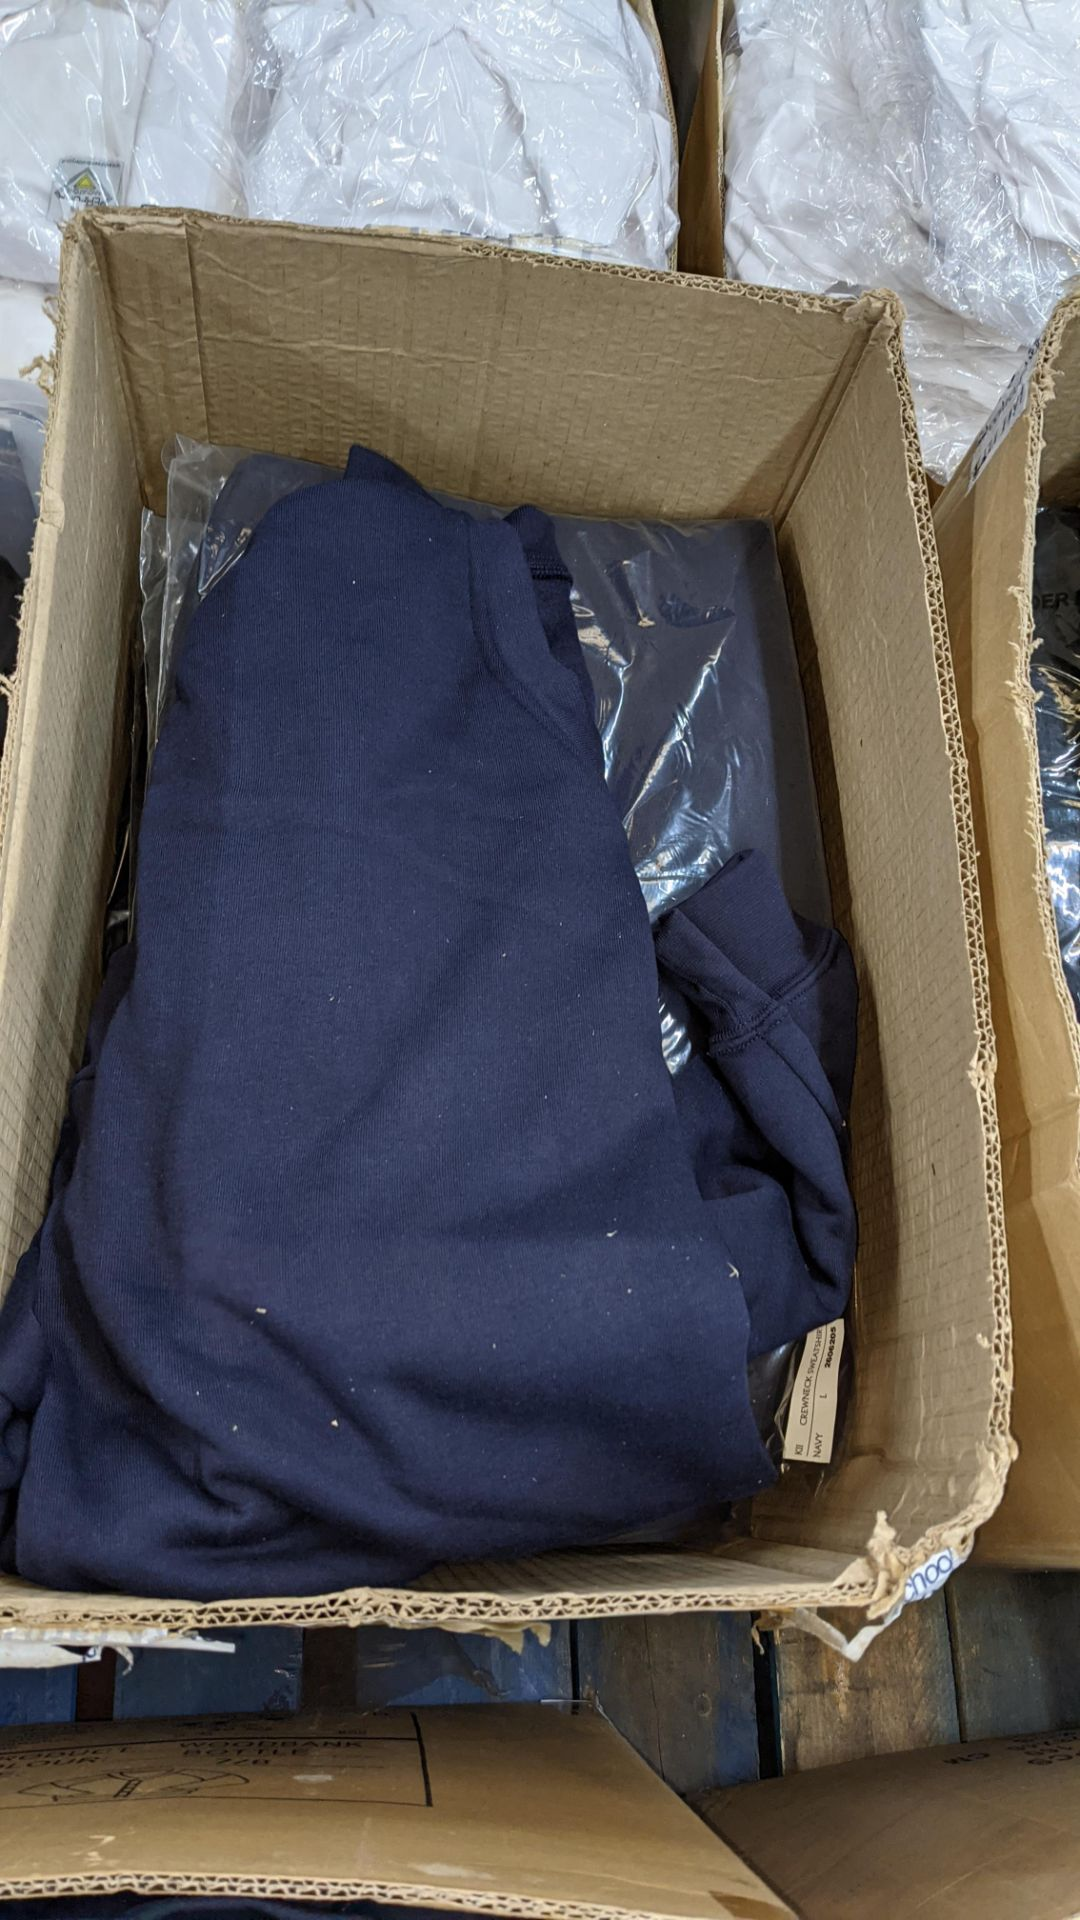 Approx 20 off blue sweatshirts - 1 large box - Image 3 of 5